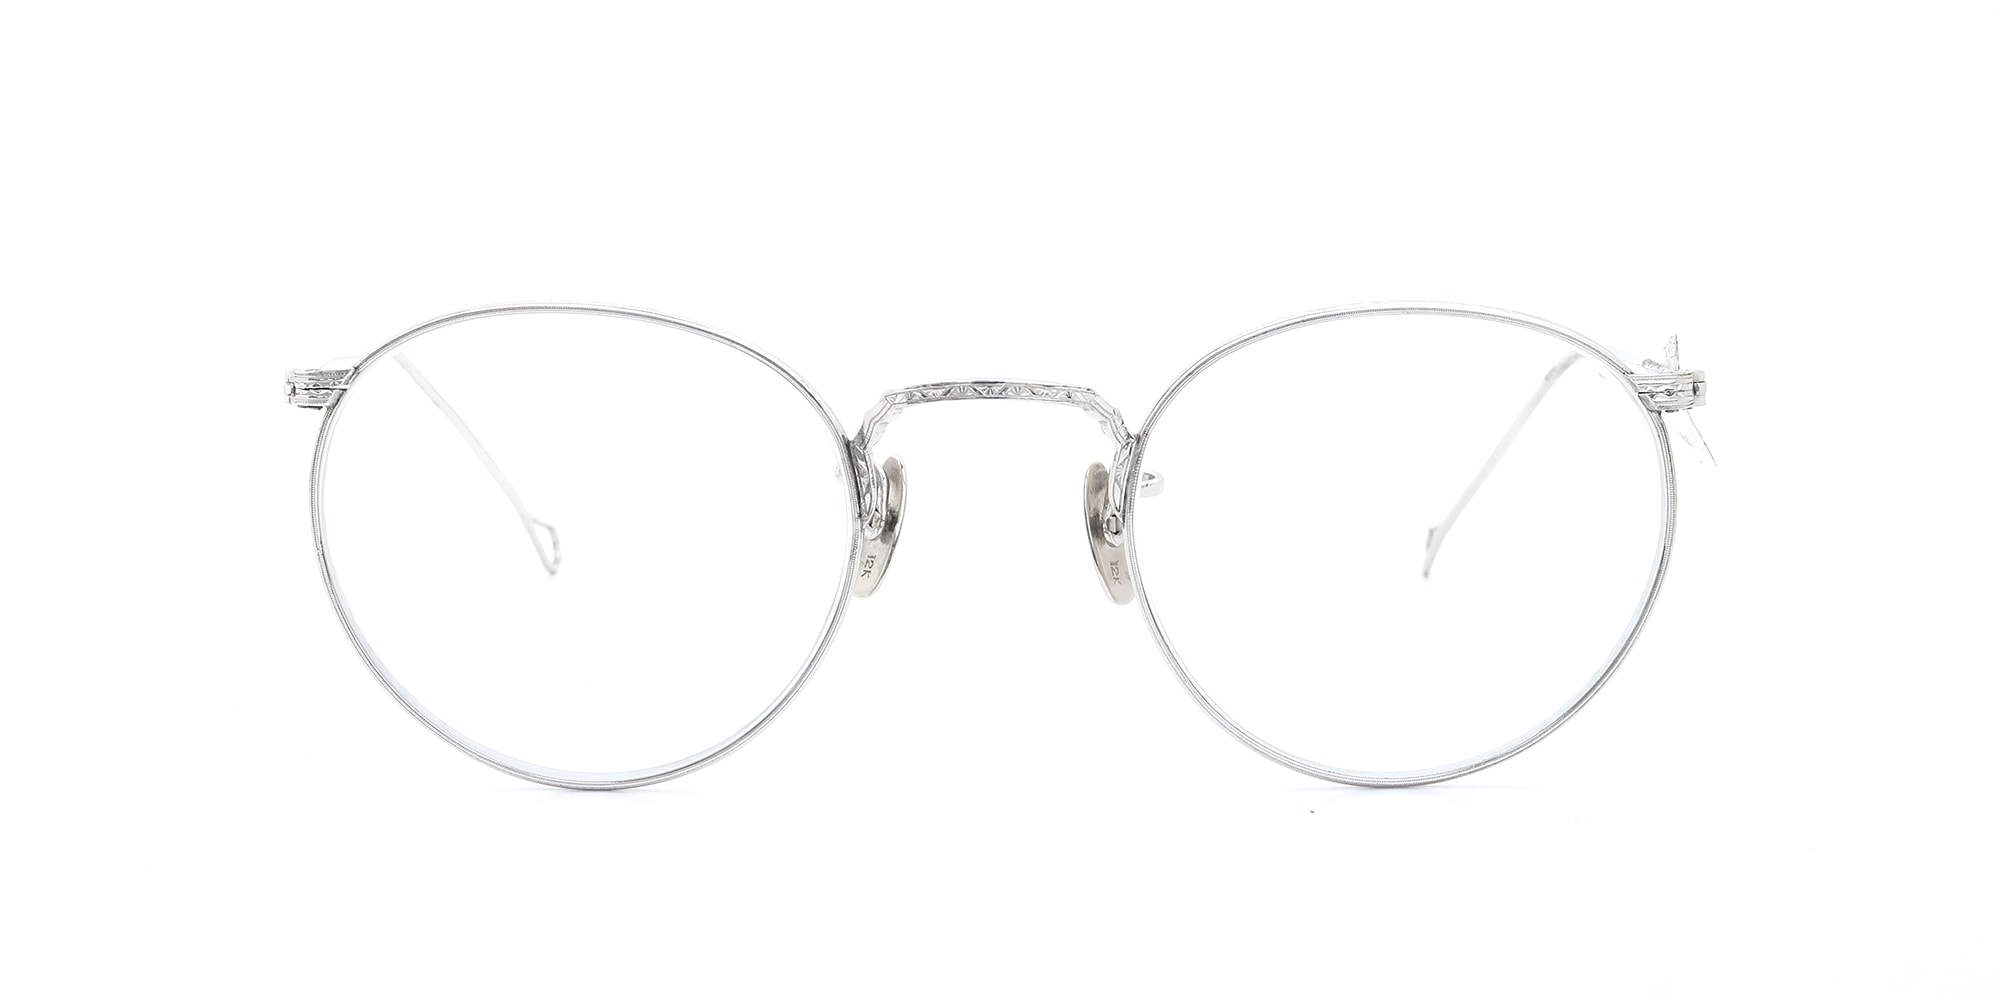 The Spectacle メガネ 1930s-40s American Optical Full-Frame Ful-Vue WG 44-22 イメージ3